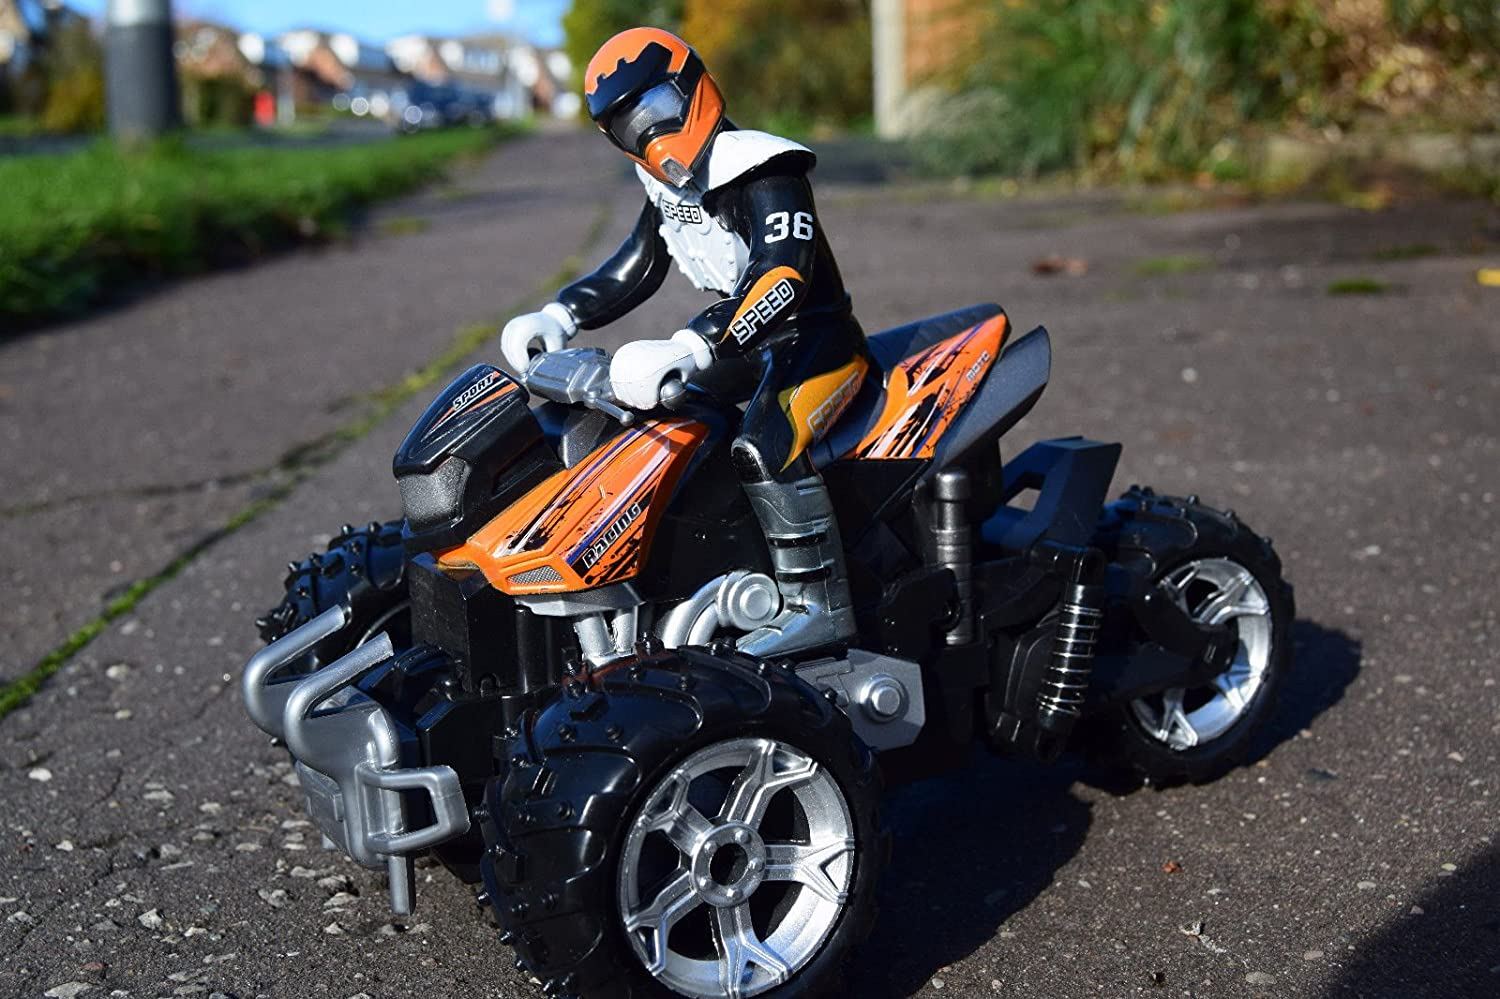 1/12 SCALE ATV QUAD MOTORCYCLE RC RADIO REMOTE CONTROL CAR CAR QUICK SPEED SAMMAR GIFTS